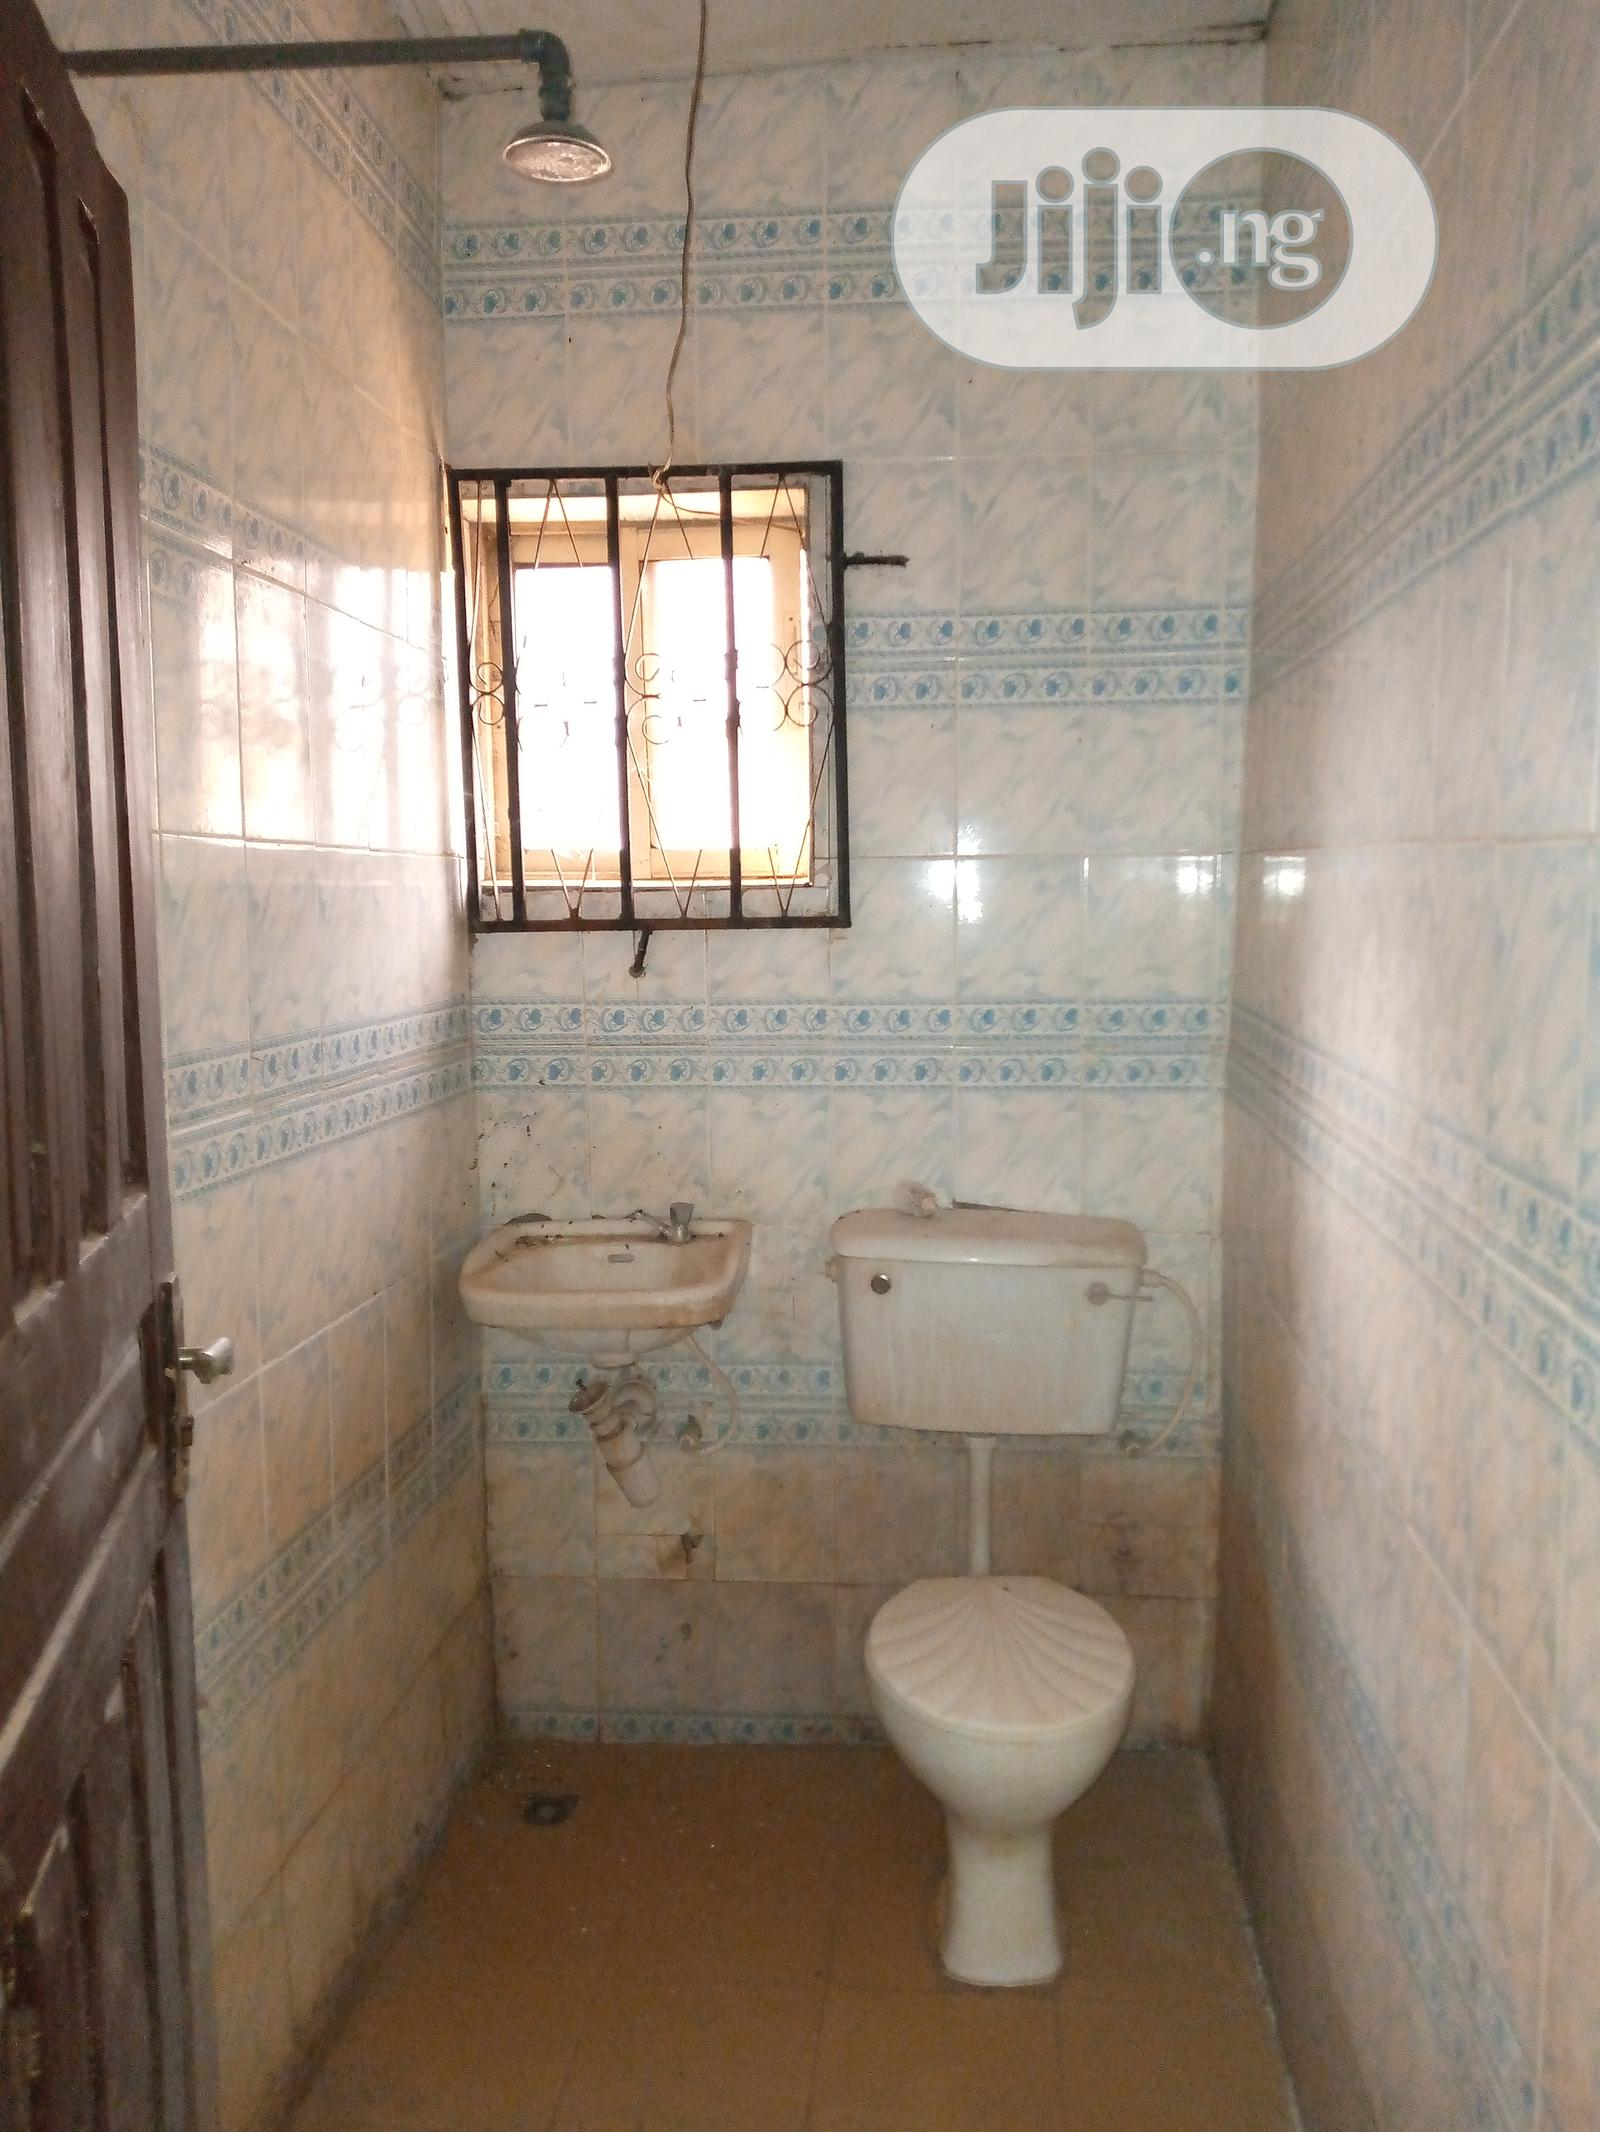 Twin 2 and 3 Bedroom Bungalow at Hope, Ogbere, Alakia Axis | Houses & Apartments For Sale for sale in Alakia, Ibadan, Nigeria